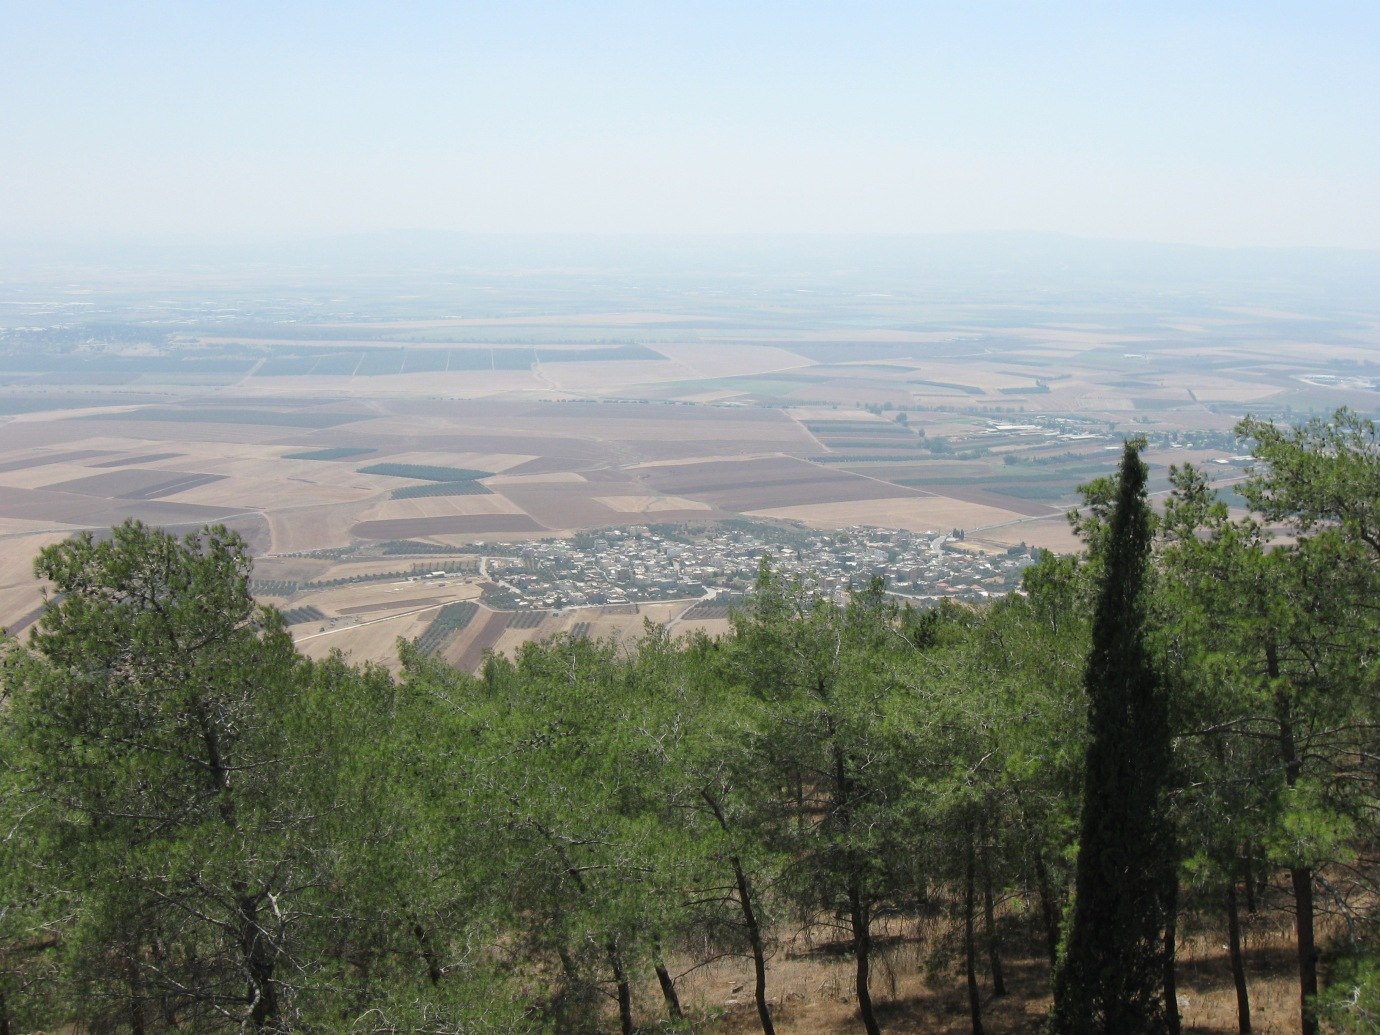 The village of Sulam viewed from the Hill of Moreh